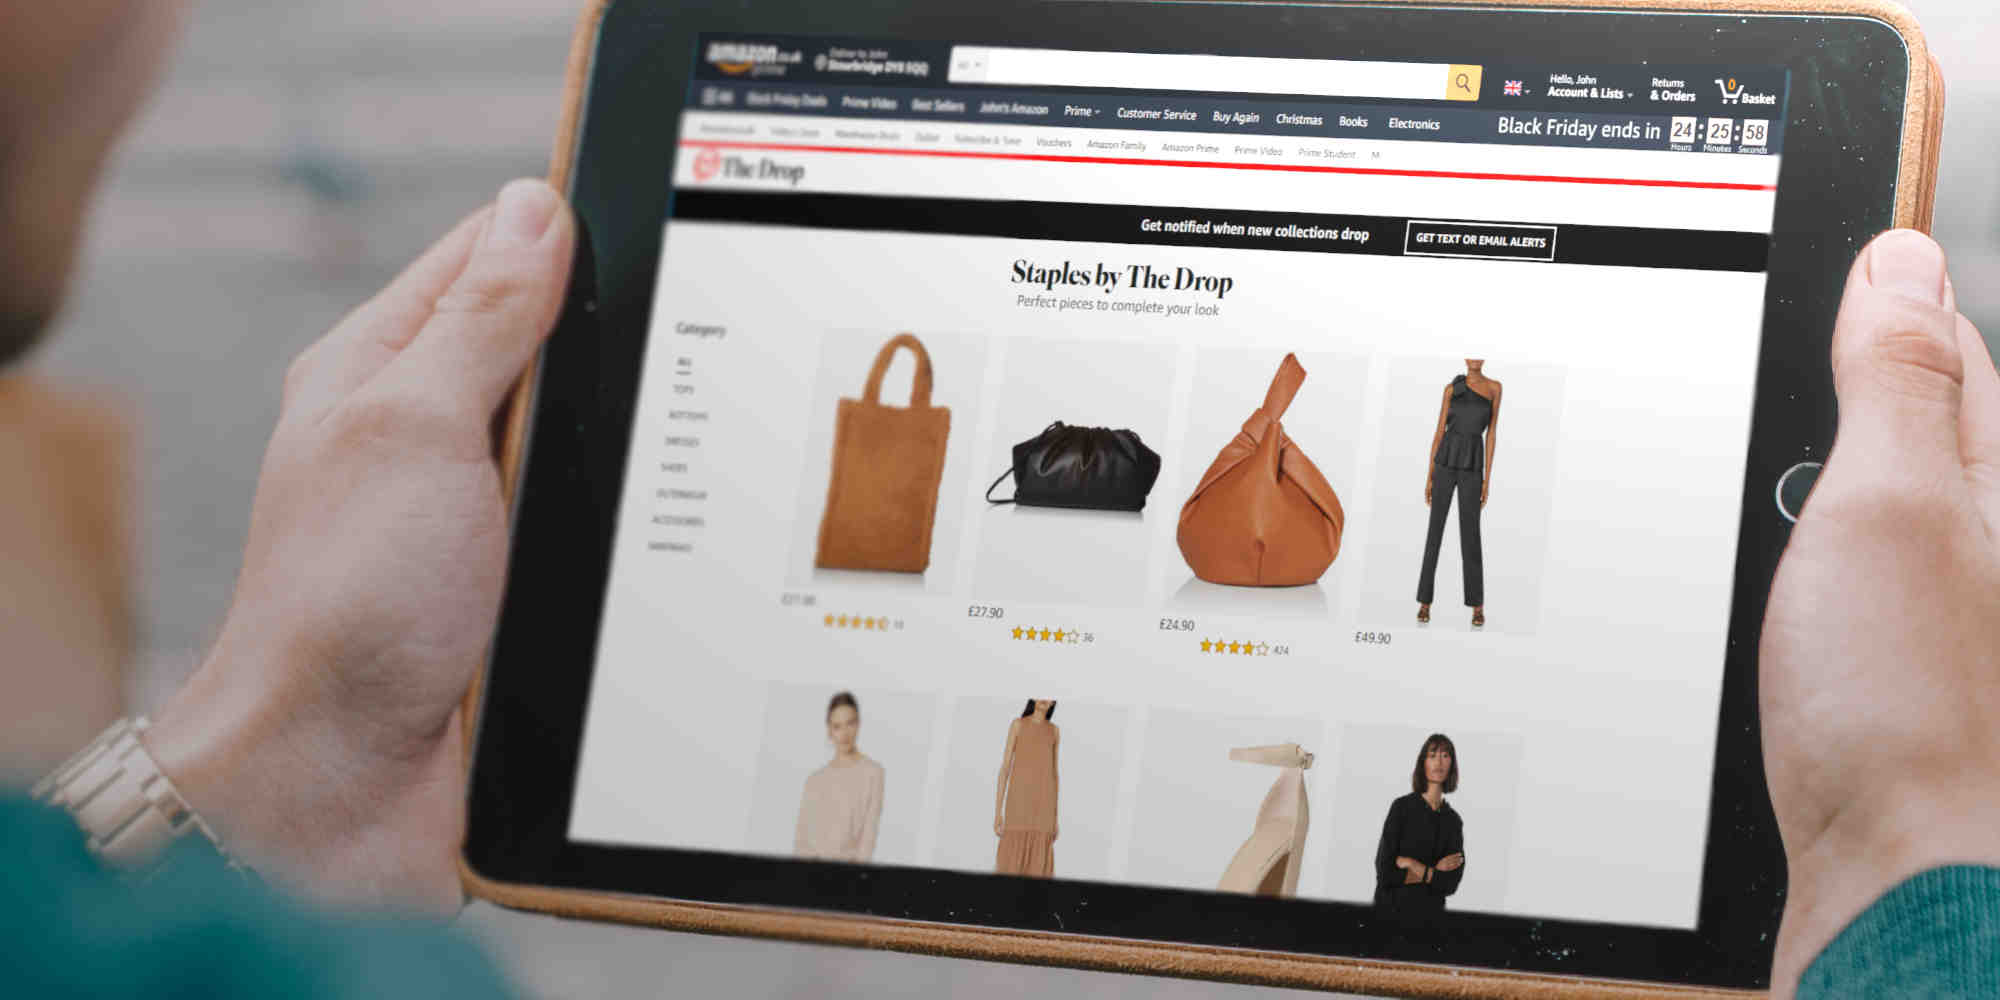 Amazon as a brand awareness platform? Time to rethink the biggest ecommerce opportunity